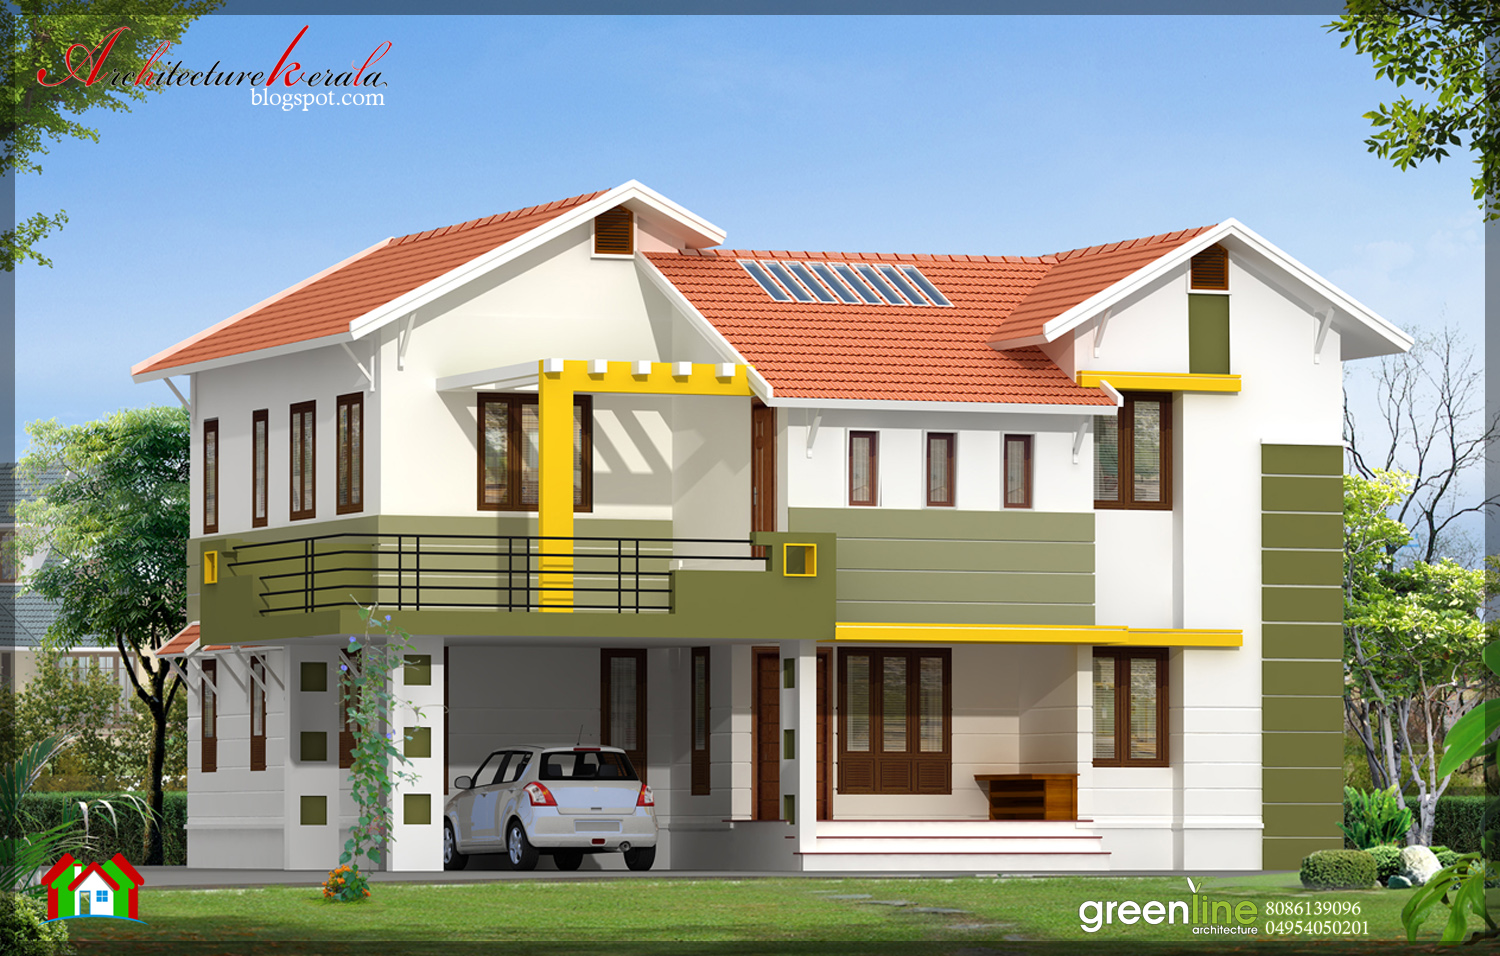 Architecture kerala 4 bhk contemporary style indian home for House plans indian style